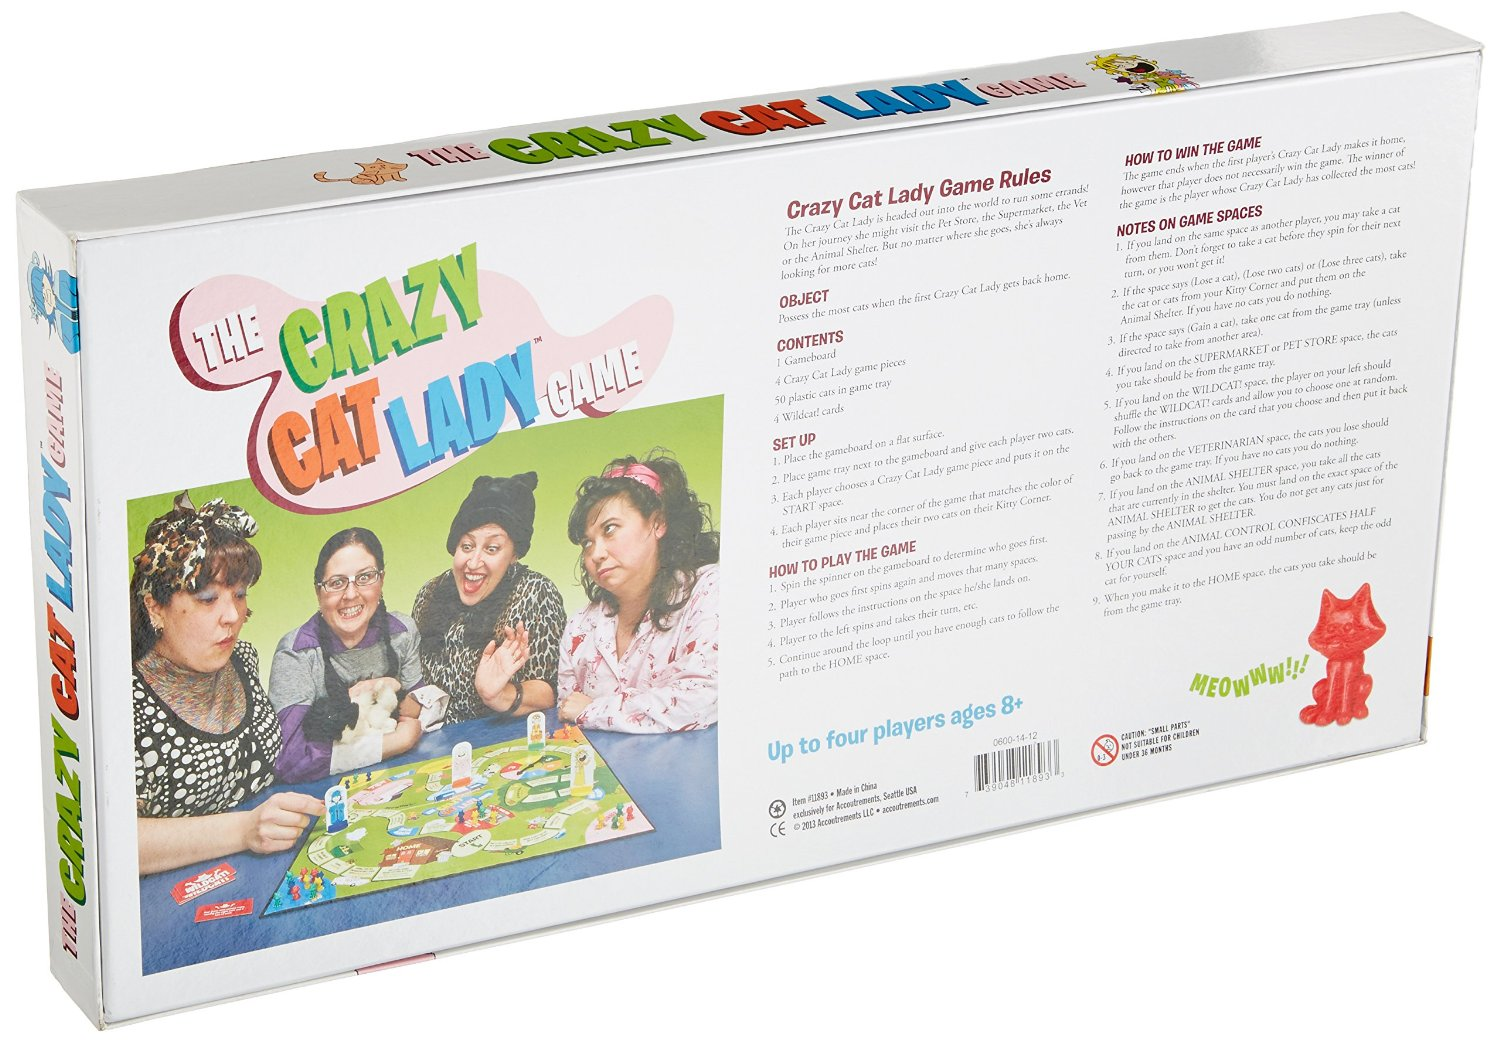 IT'S HERE! The Crazy Cat Lady Board Game